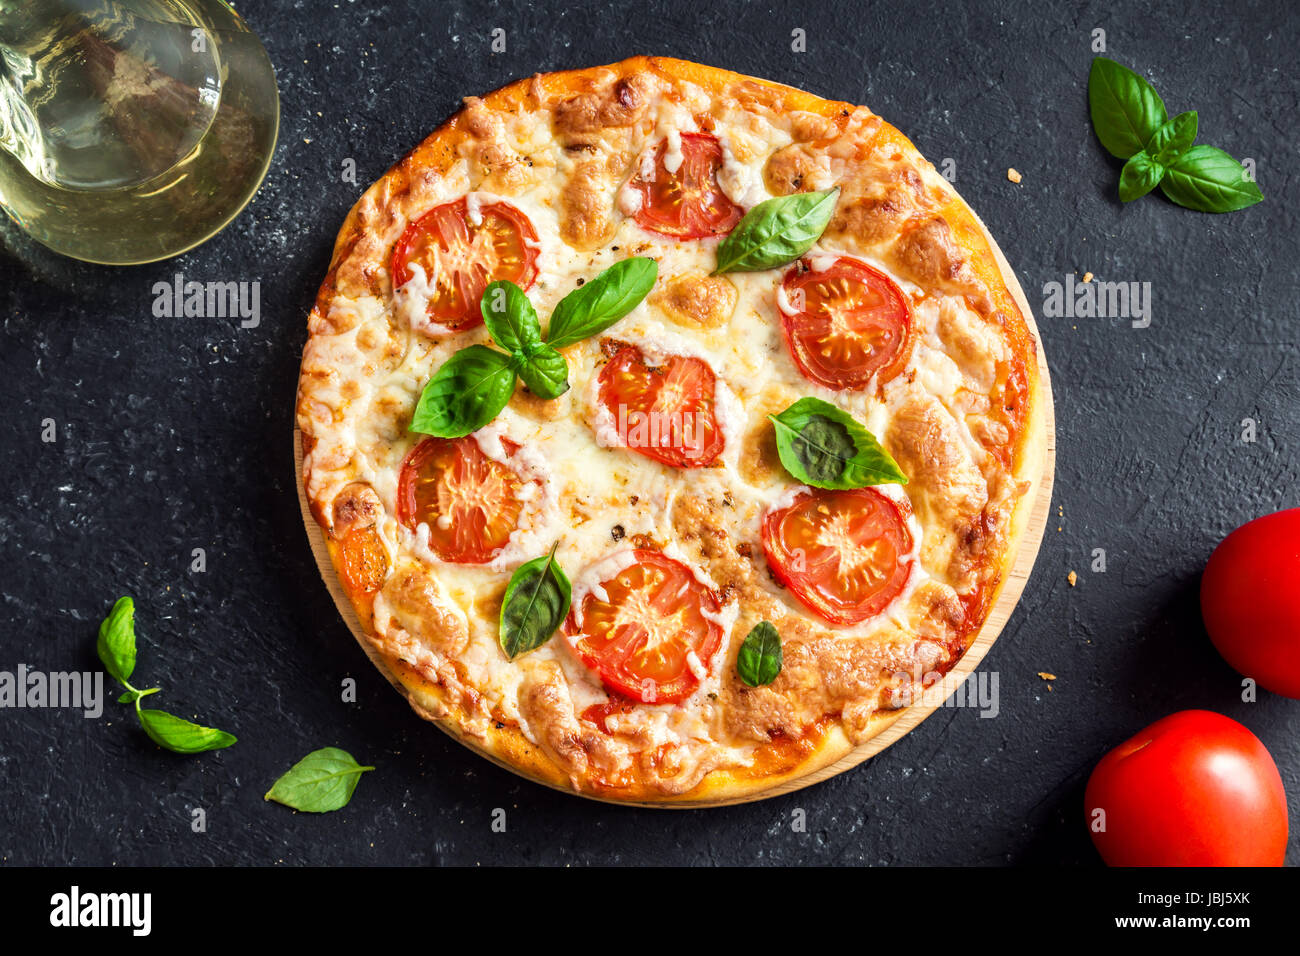 Pizza Margherita on black stone background. Homemade Pizza Margarita with Tomatoes, Basil and Mozzarella Cheese. - Stock Image